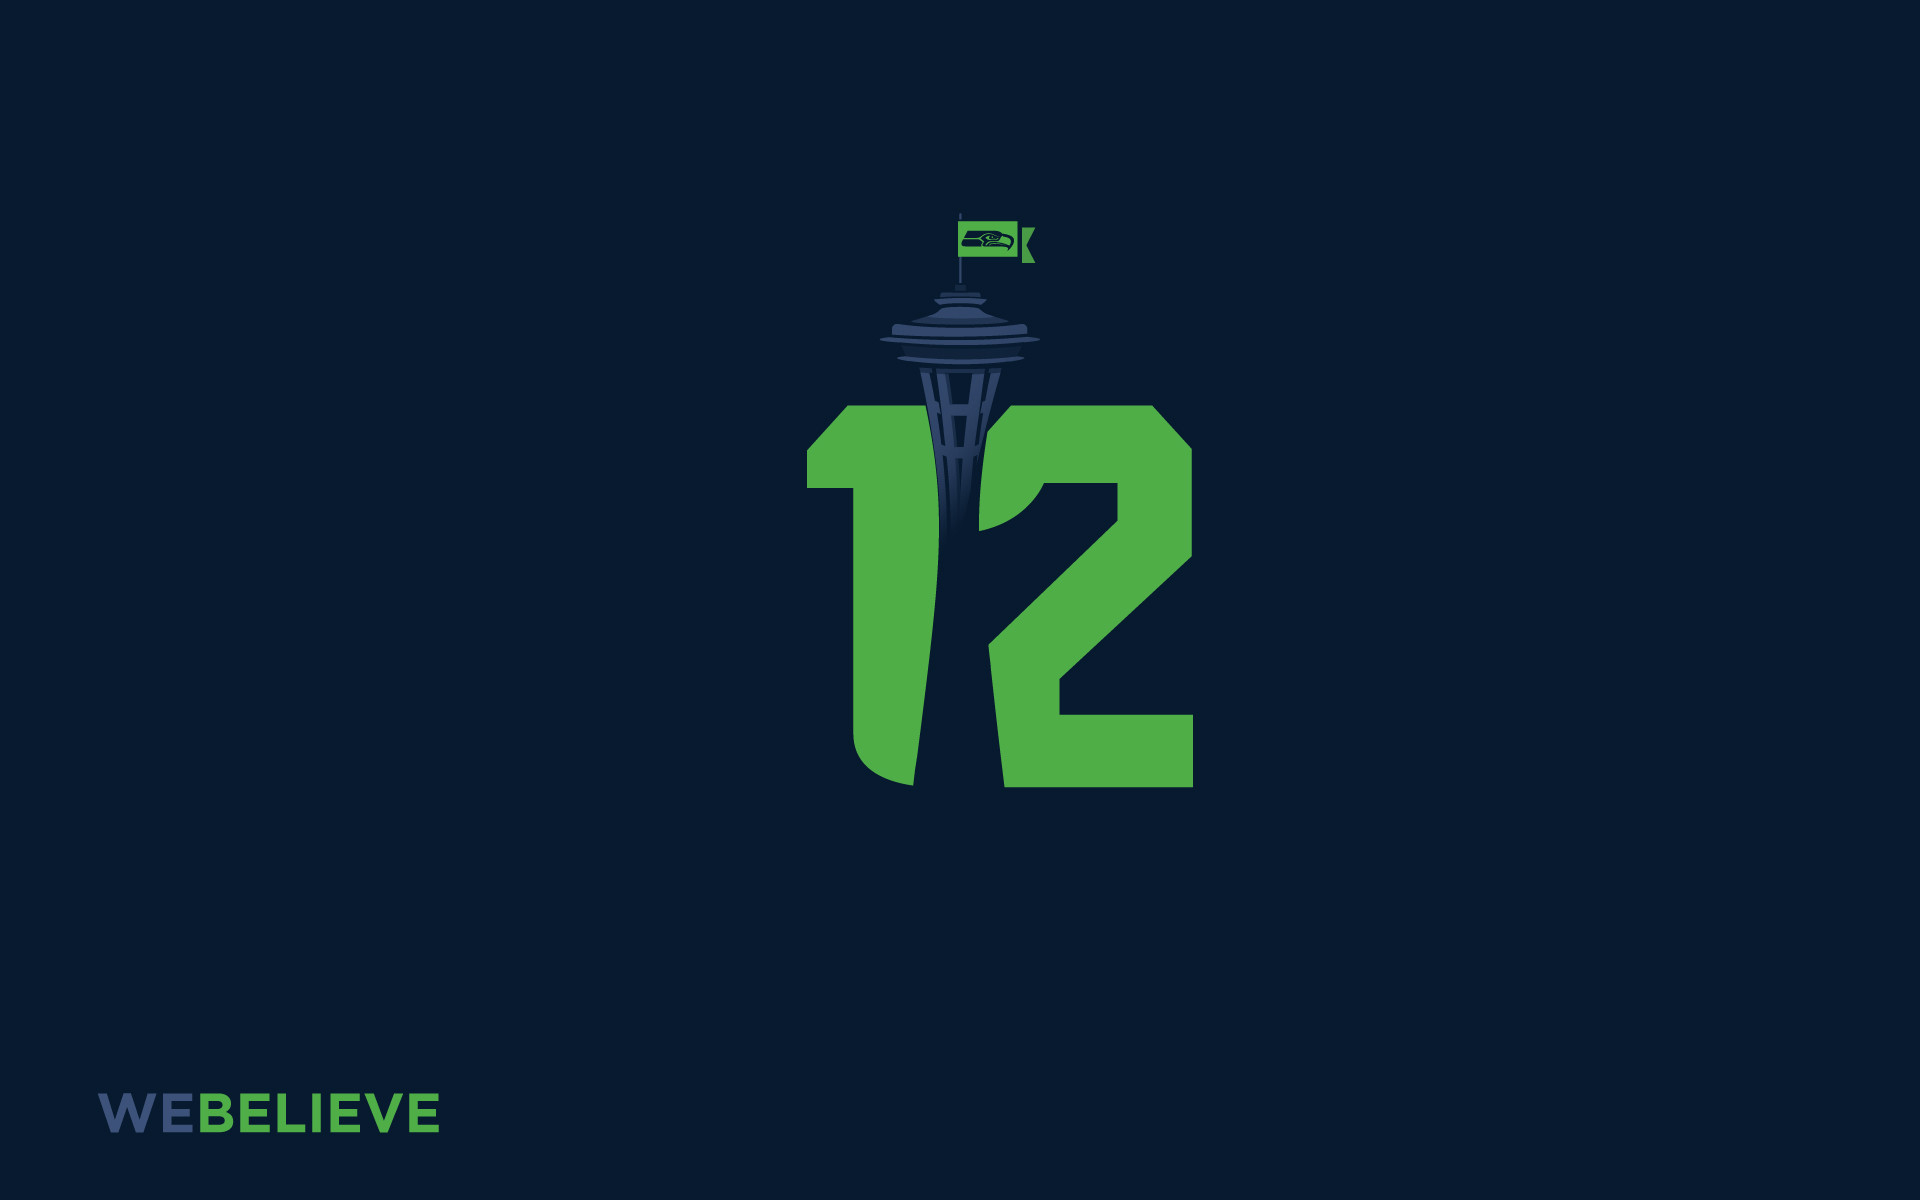 1920x1200 Seahawks Wallpaper Iphone 5 12th man wallpapers